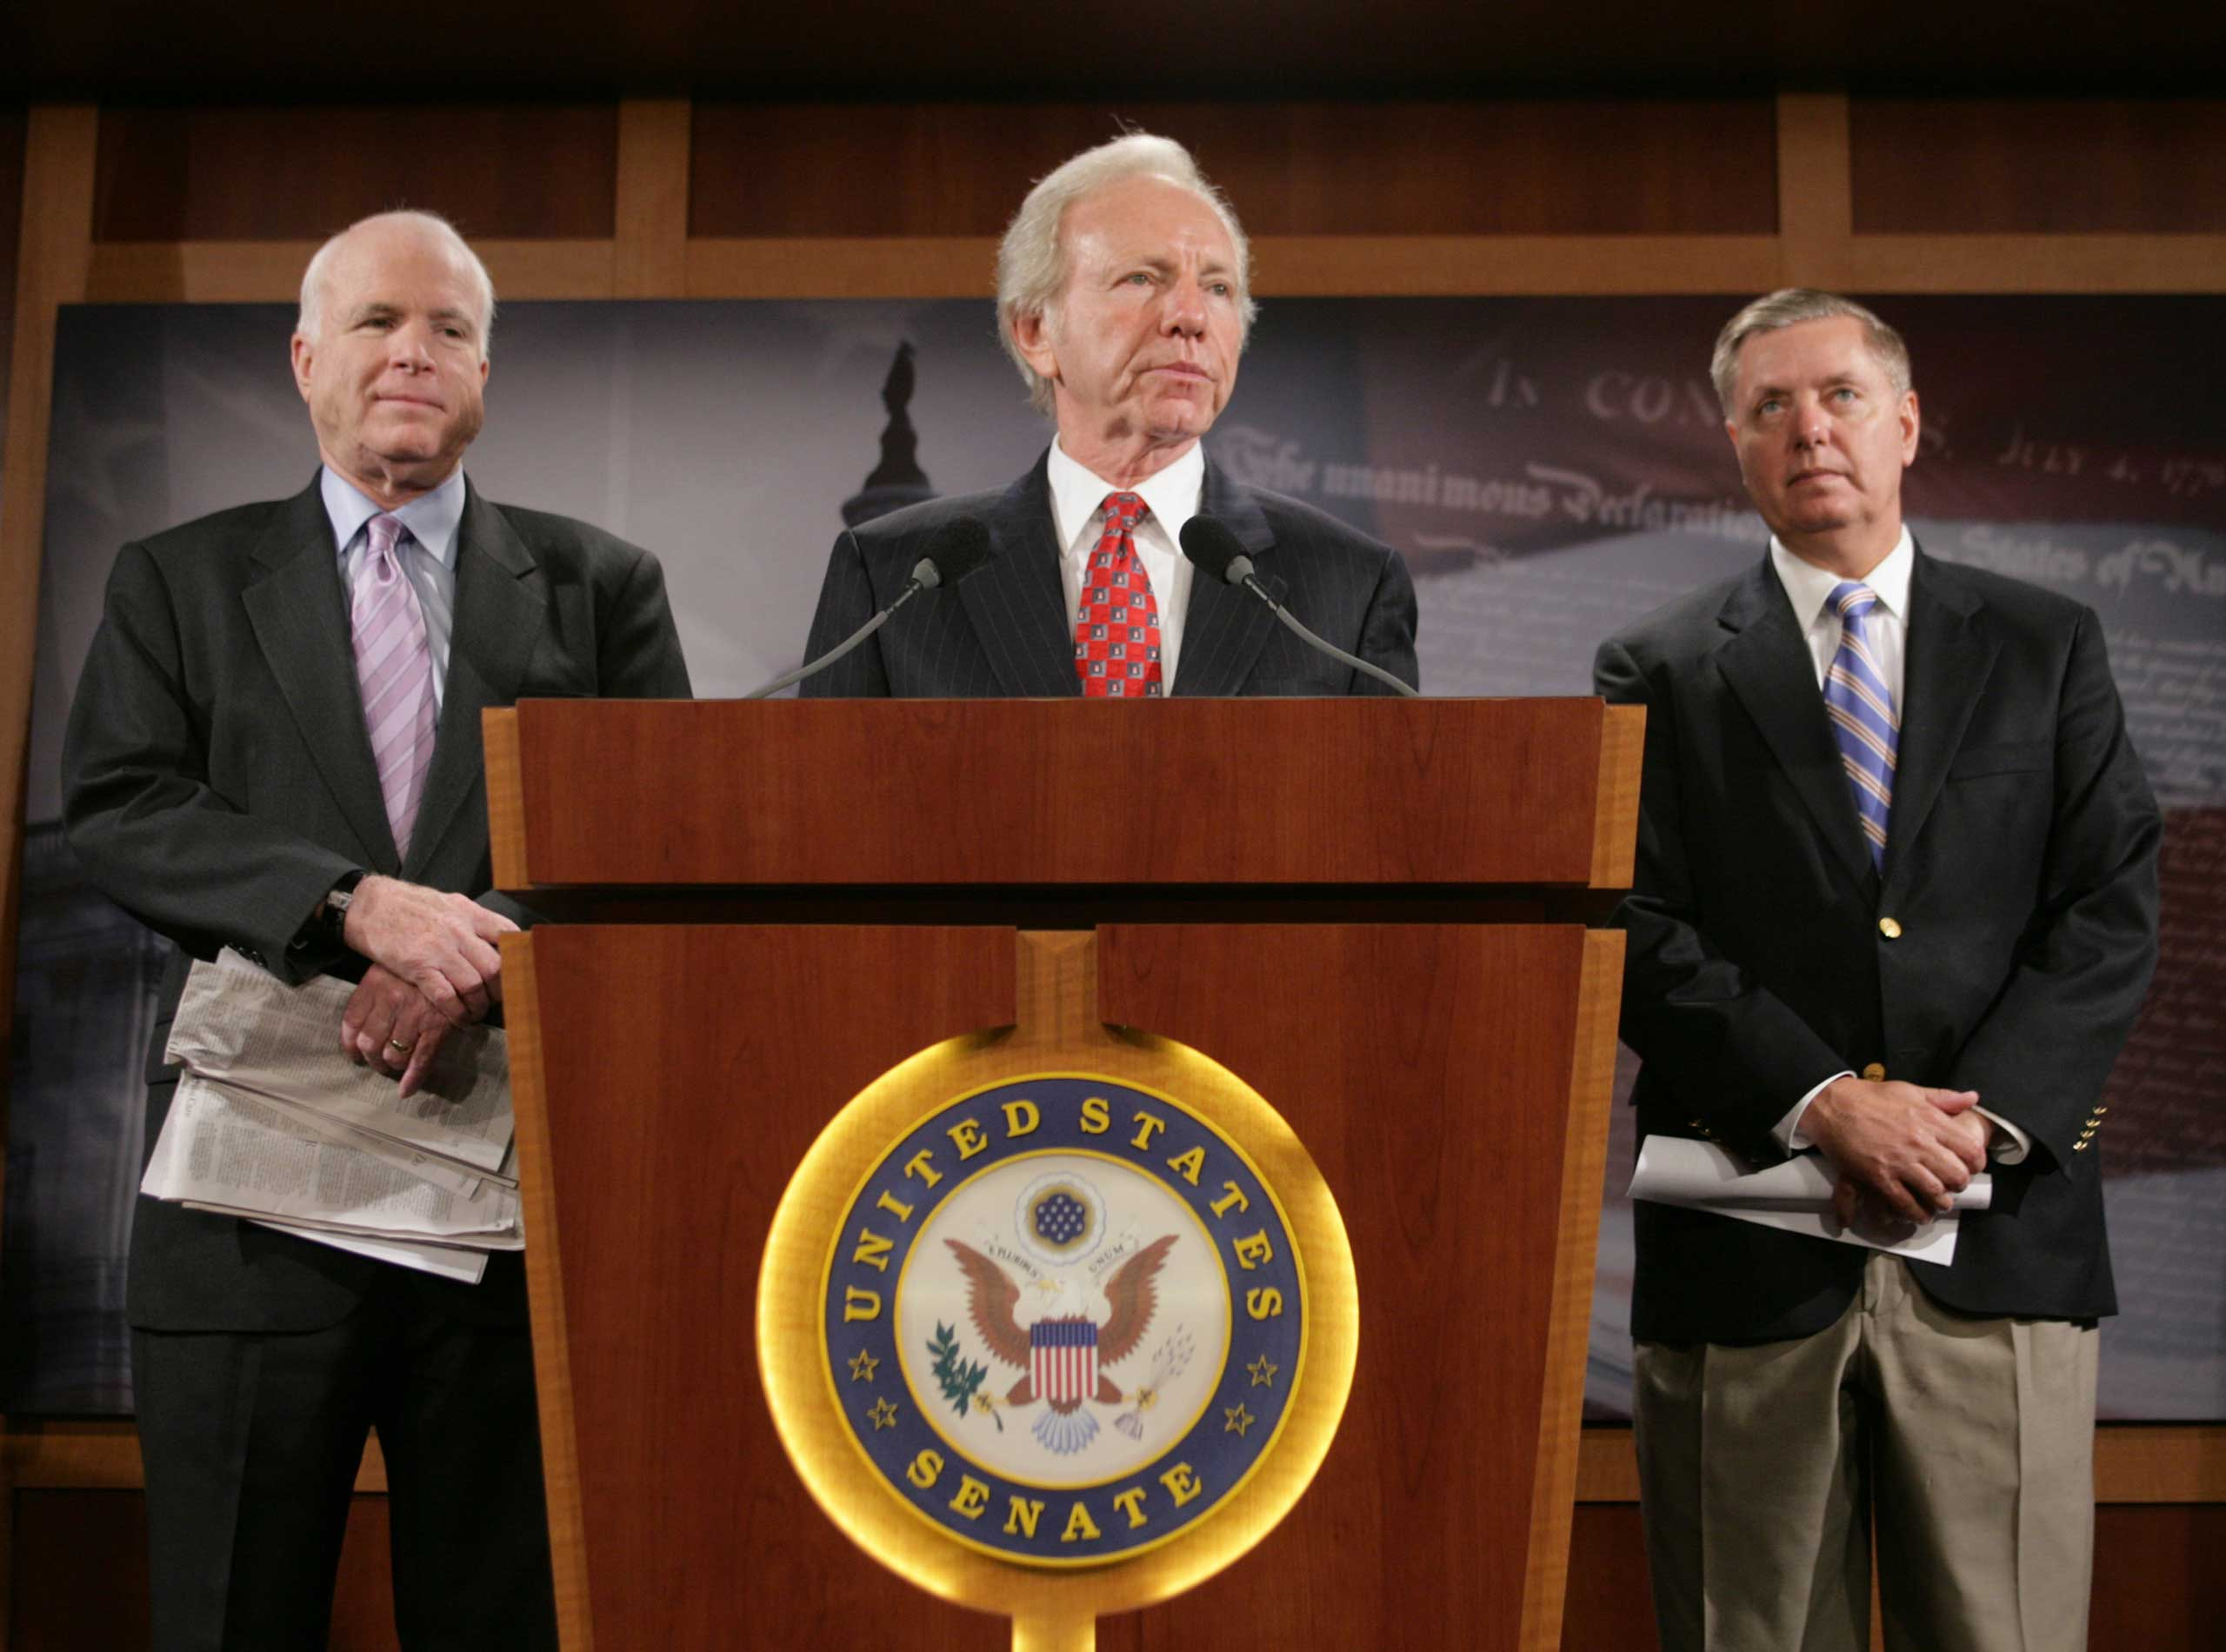 The three Senators, shown here in 2009, often appeared at each other's press conferences.